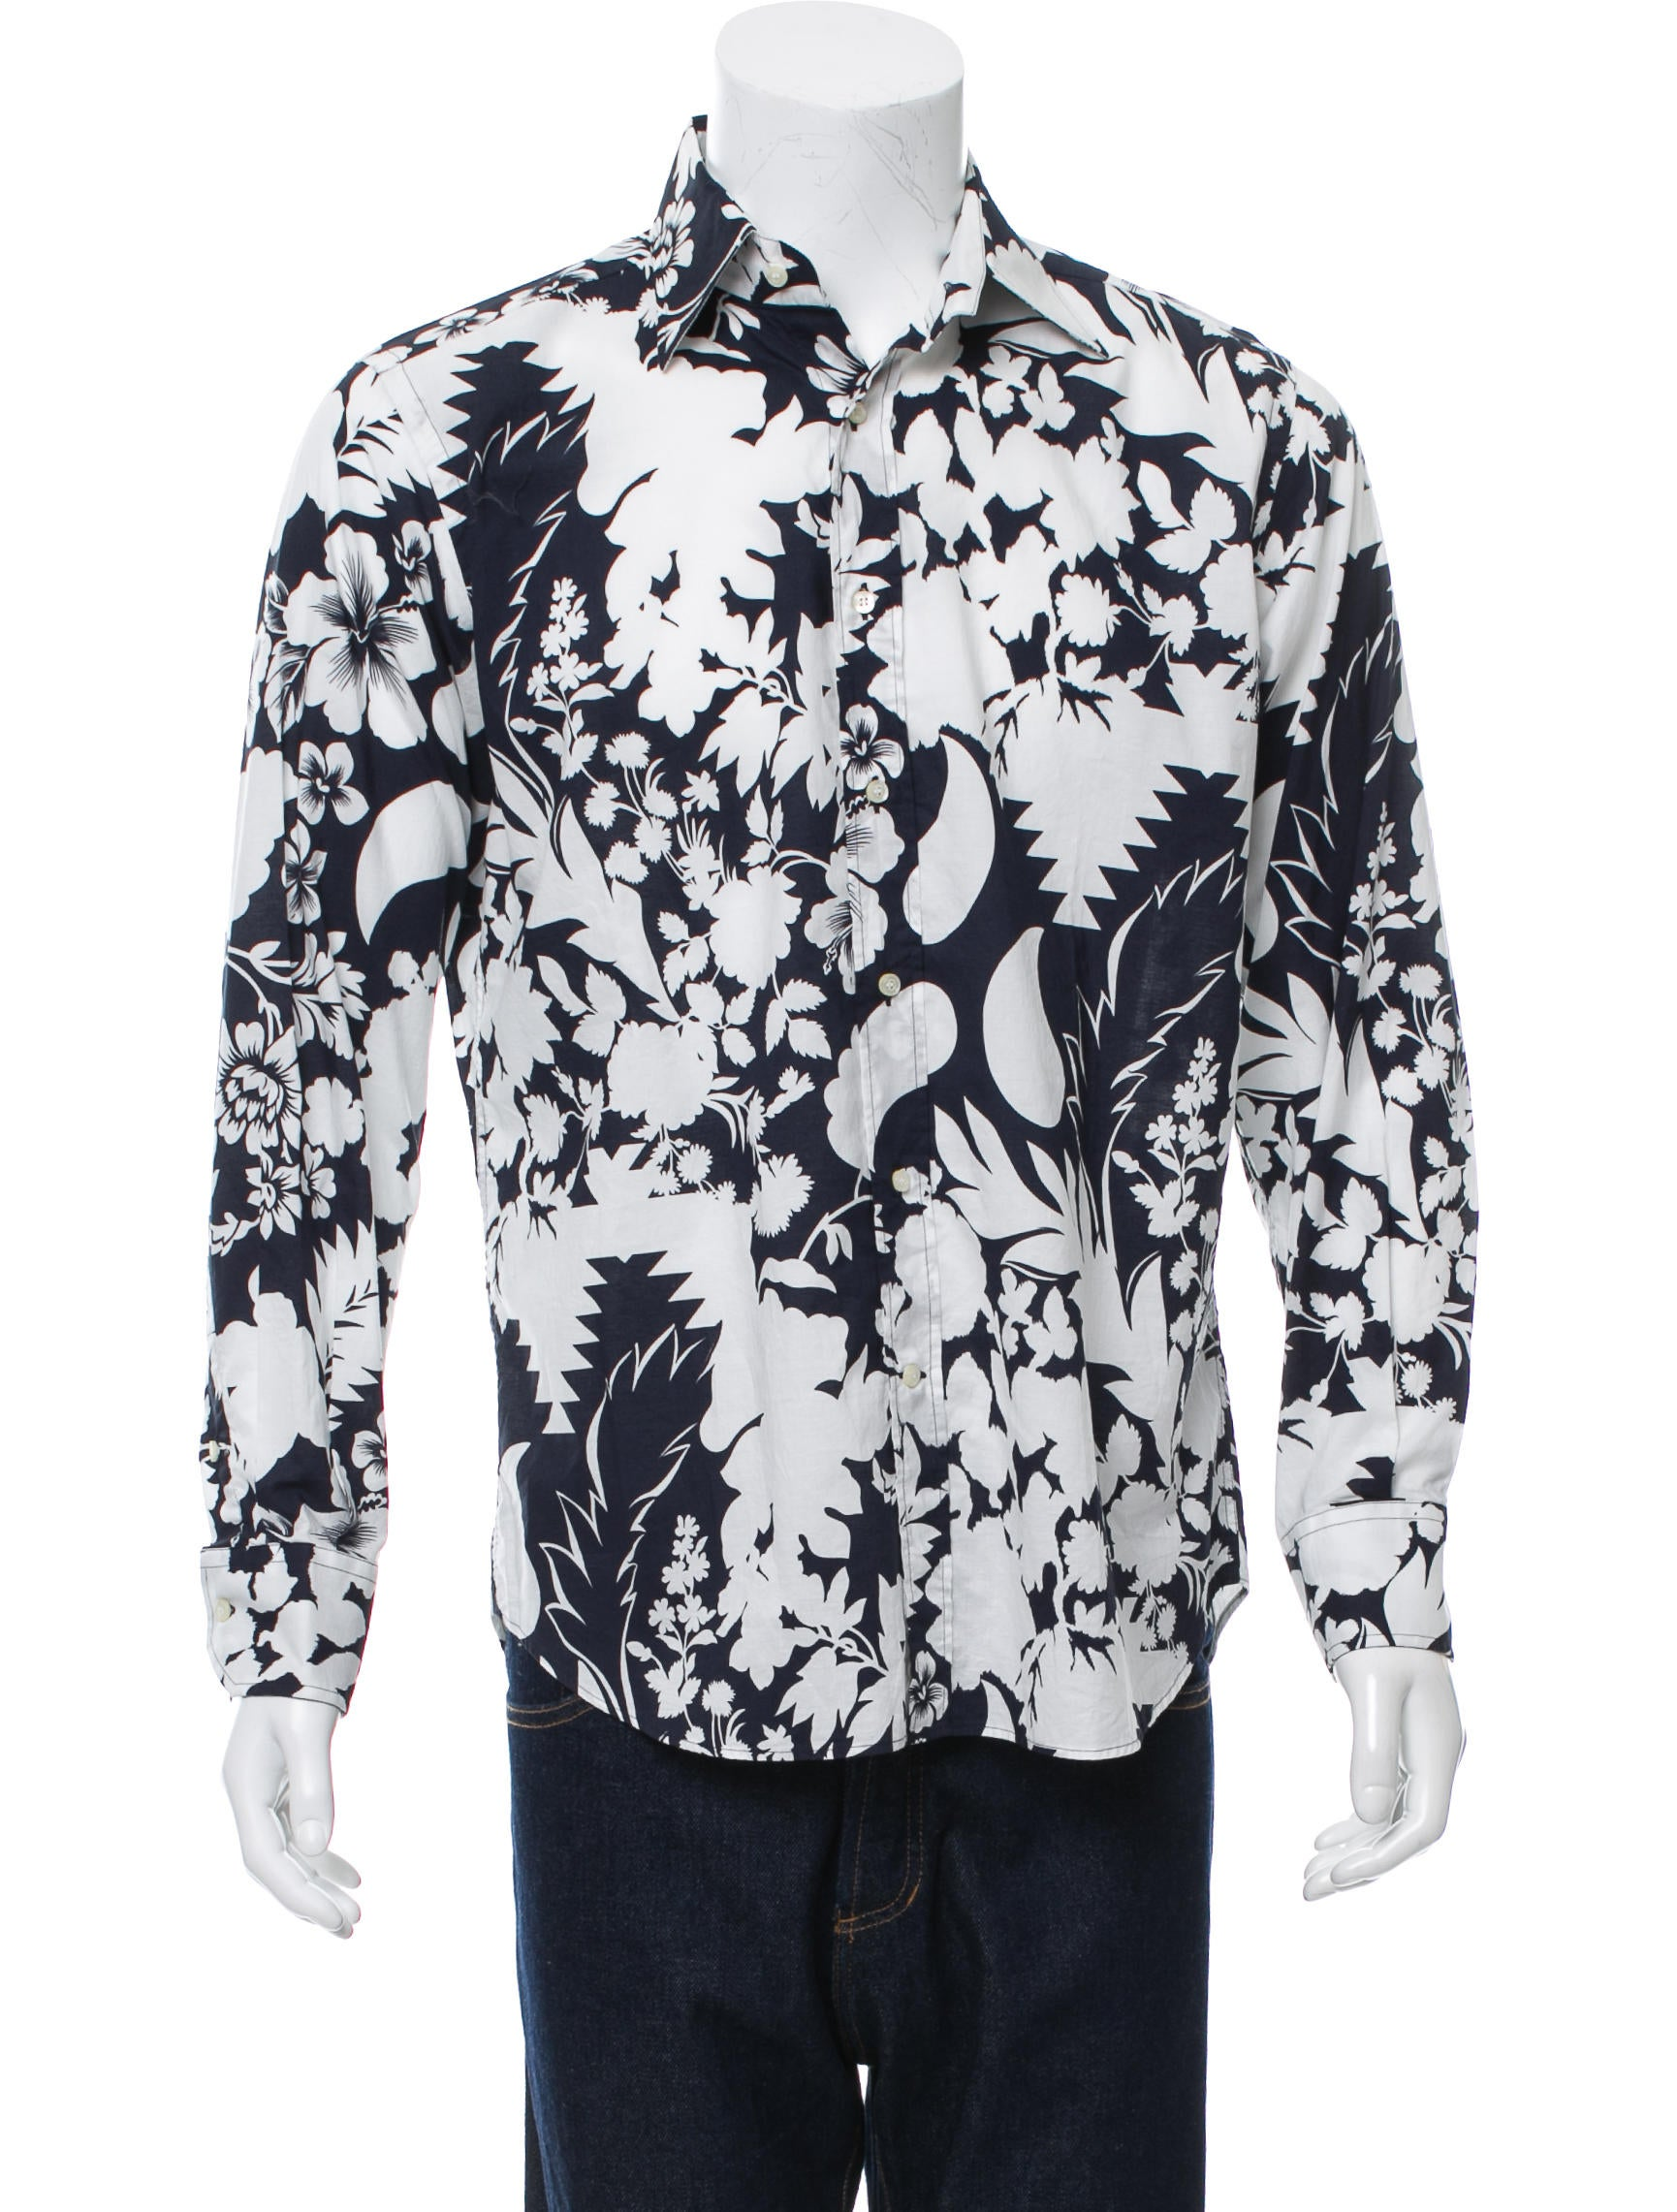 Etro floral print button up shirt clothing etr45583 for Floral print button up shirt